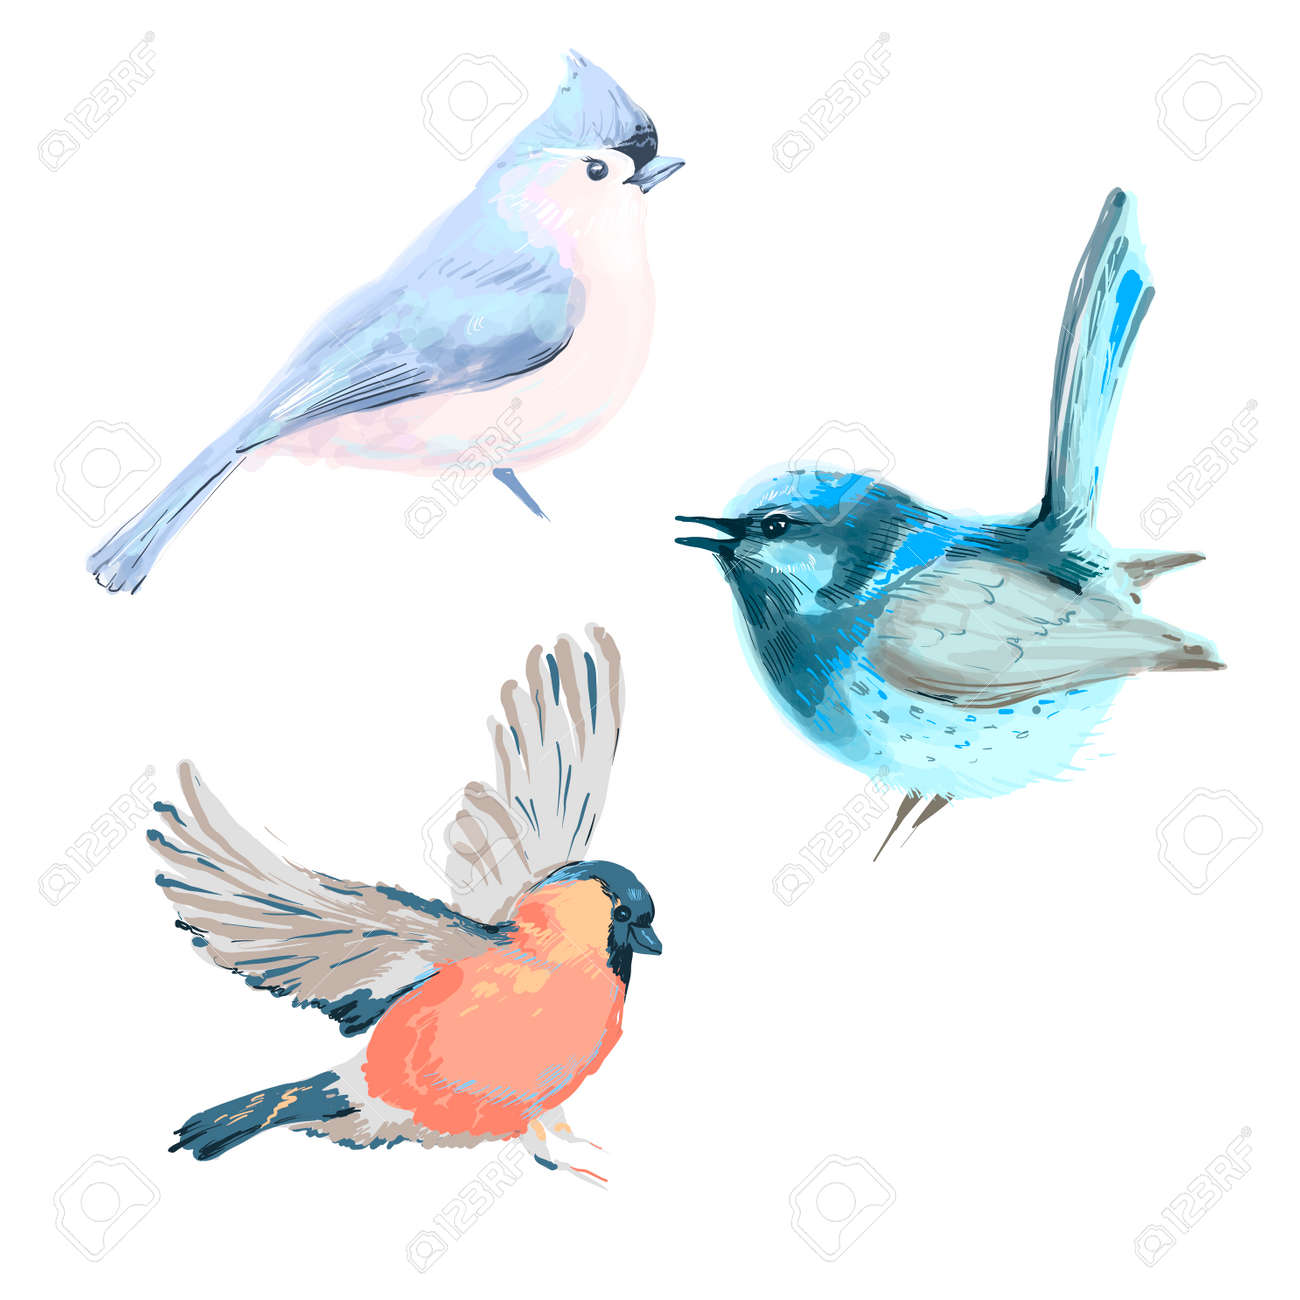 Vector illustration of three different birds isolated on white - 169291492